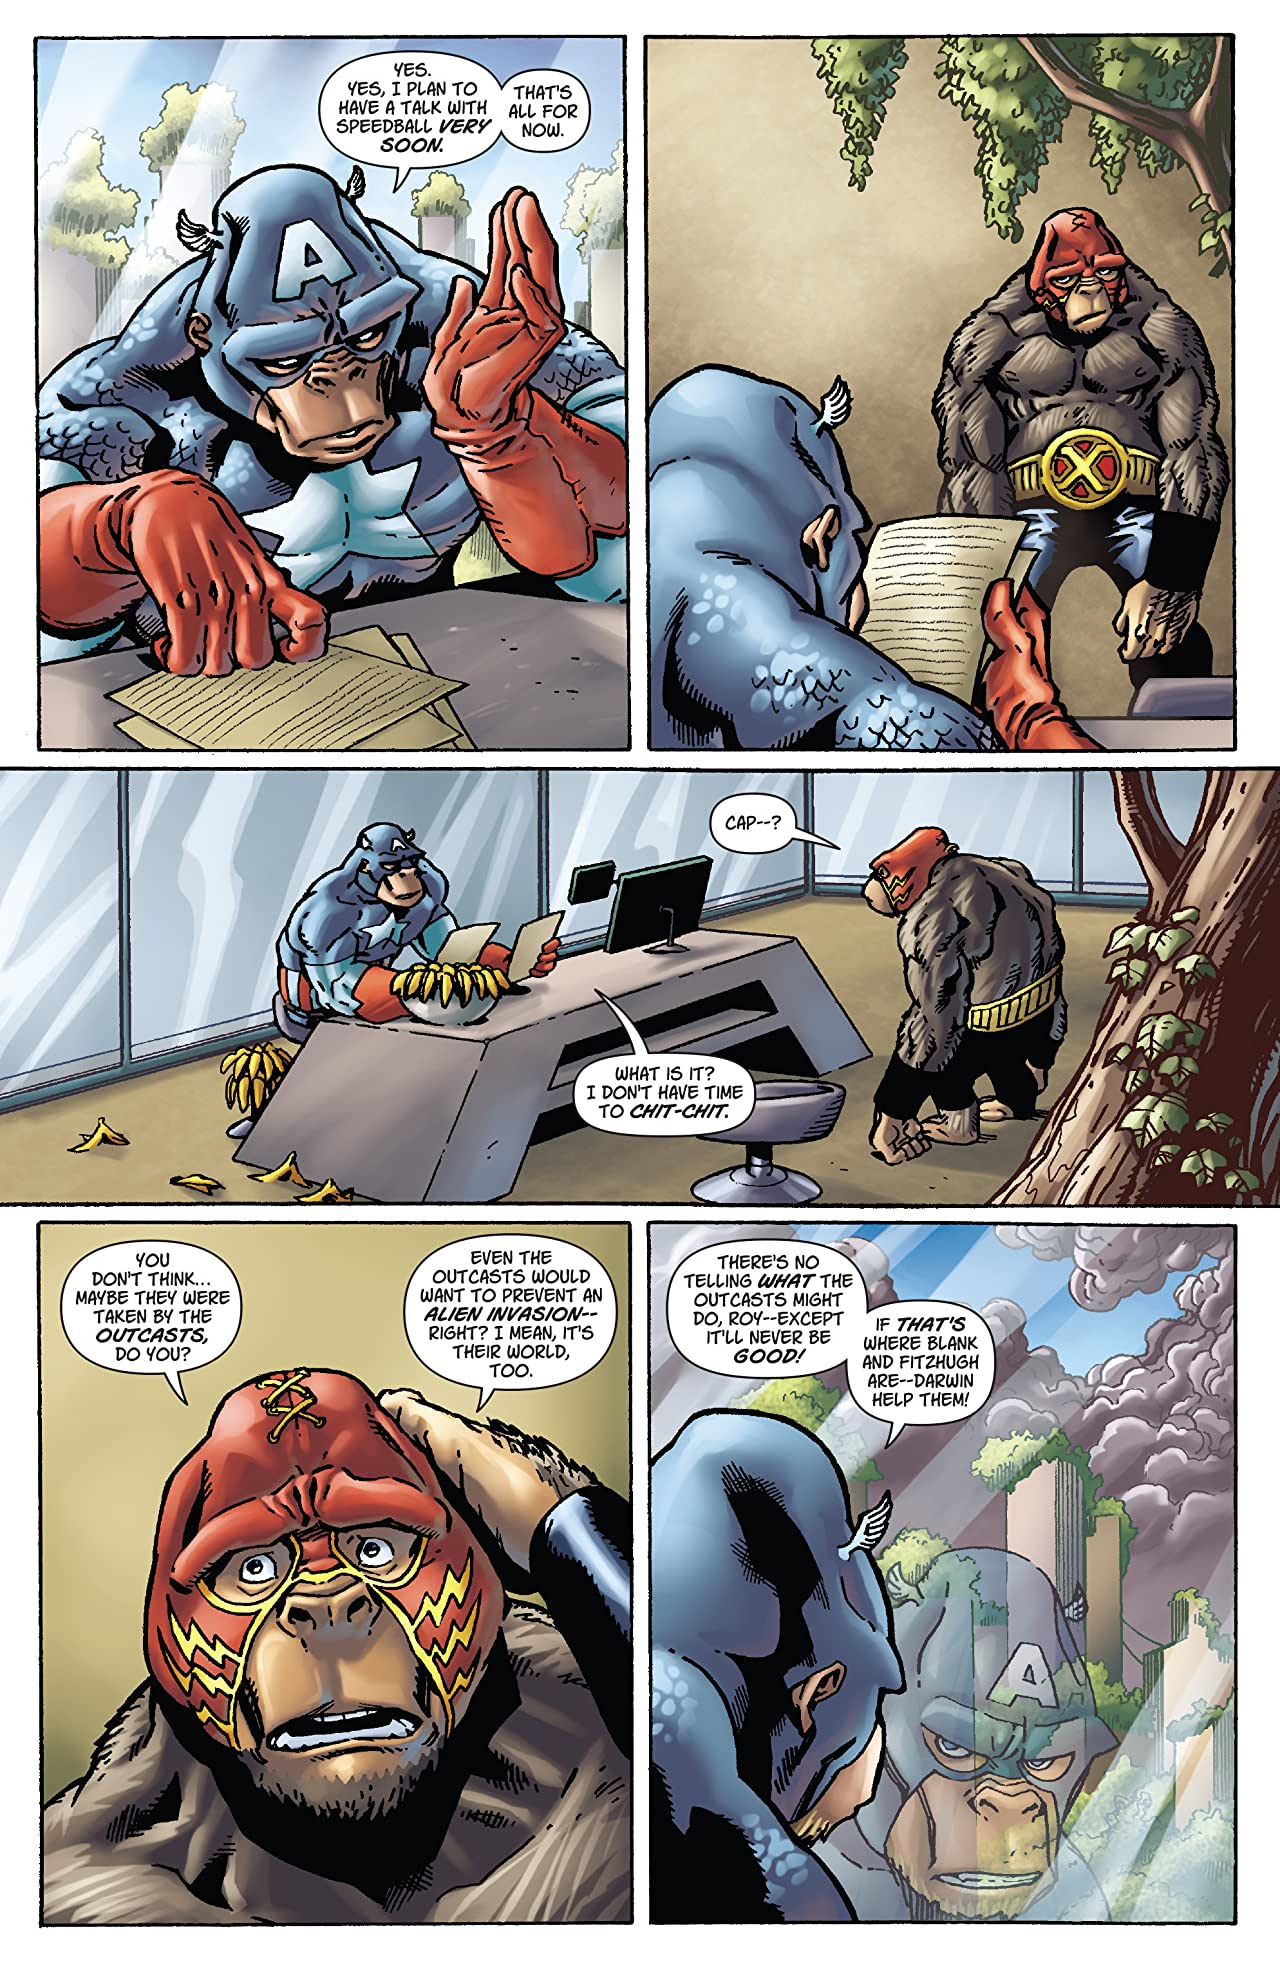 Marvel Apes (2008) #3 (of 4)